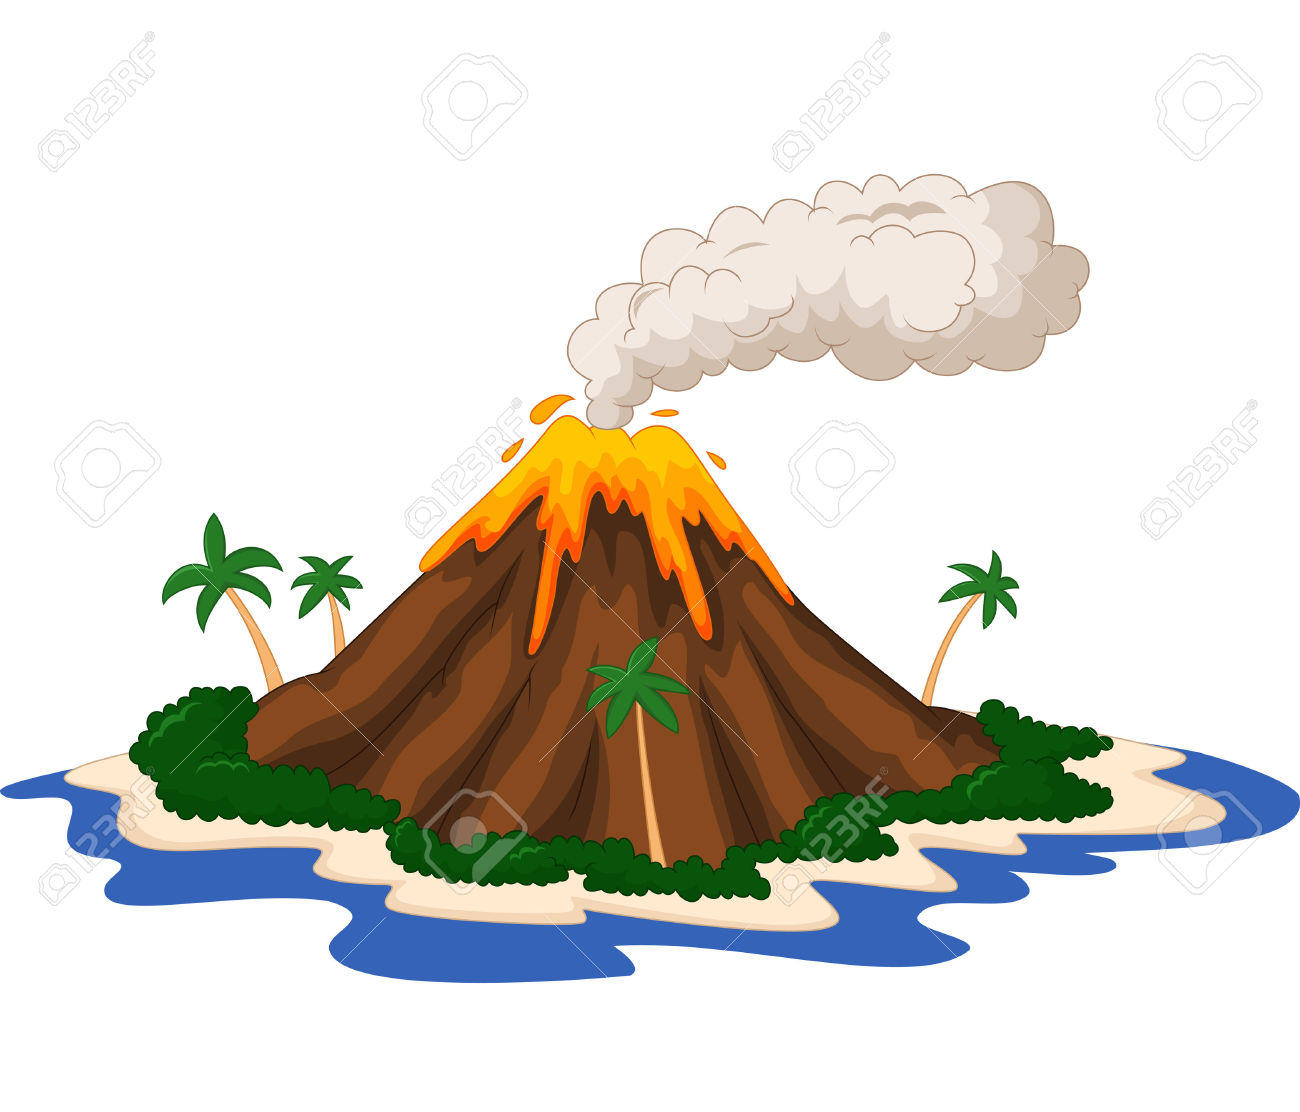 desert landscape clipart at getdrawings com free for personal use rh getdrawings com cape landform clipart landform clipart black and white